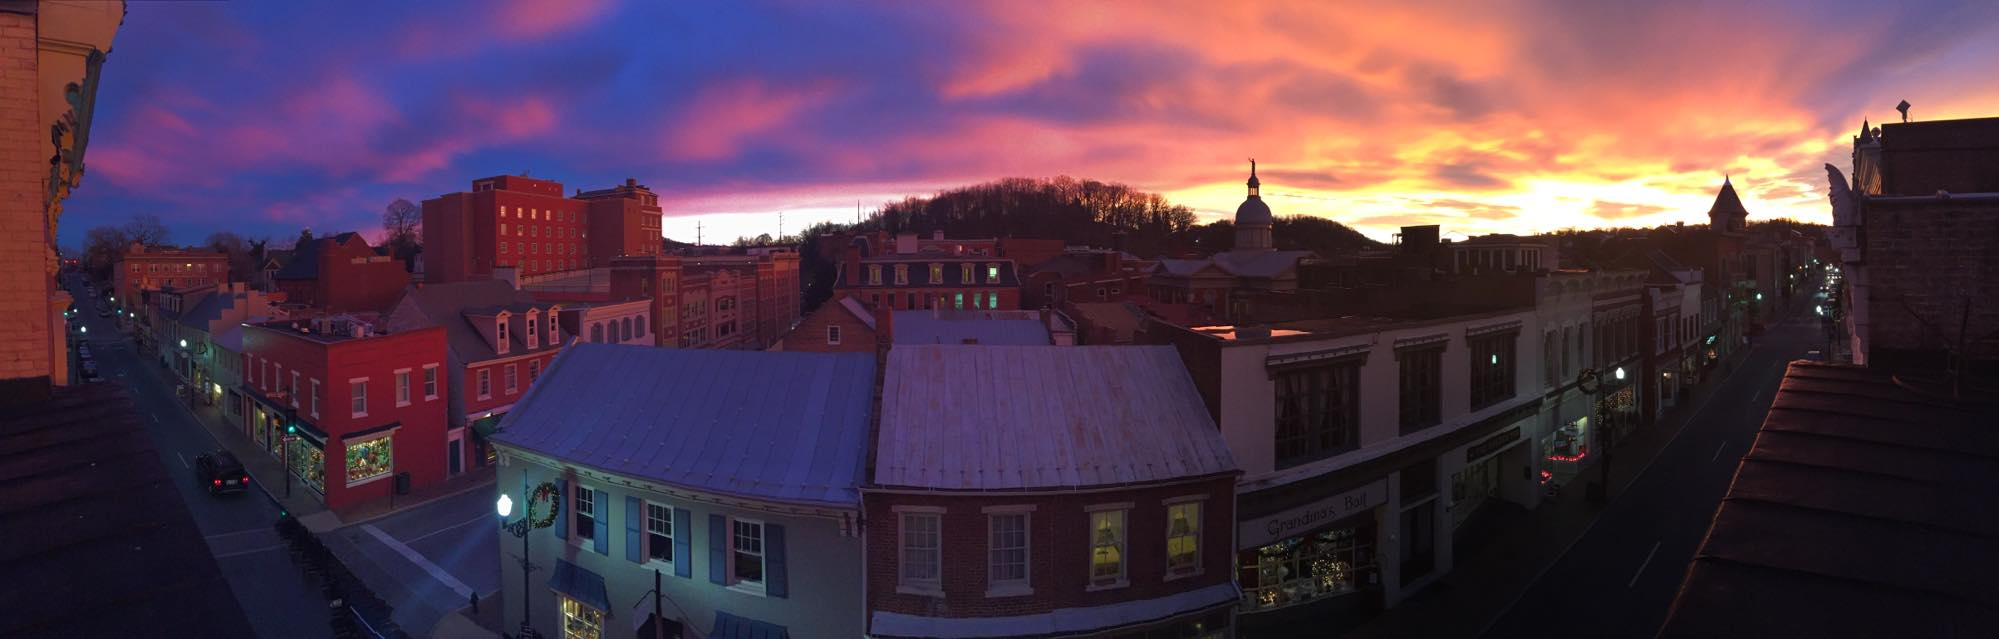 Staunton's Sky Shows: Six Places to Watch a Sunset